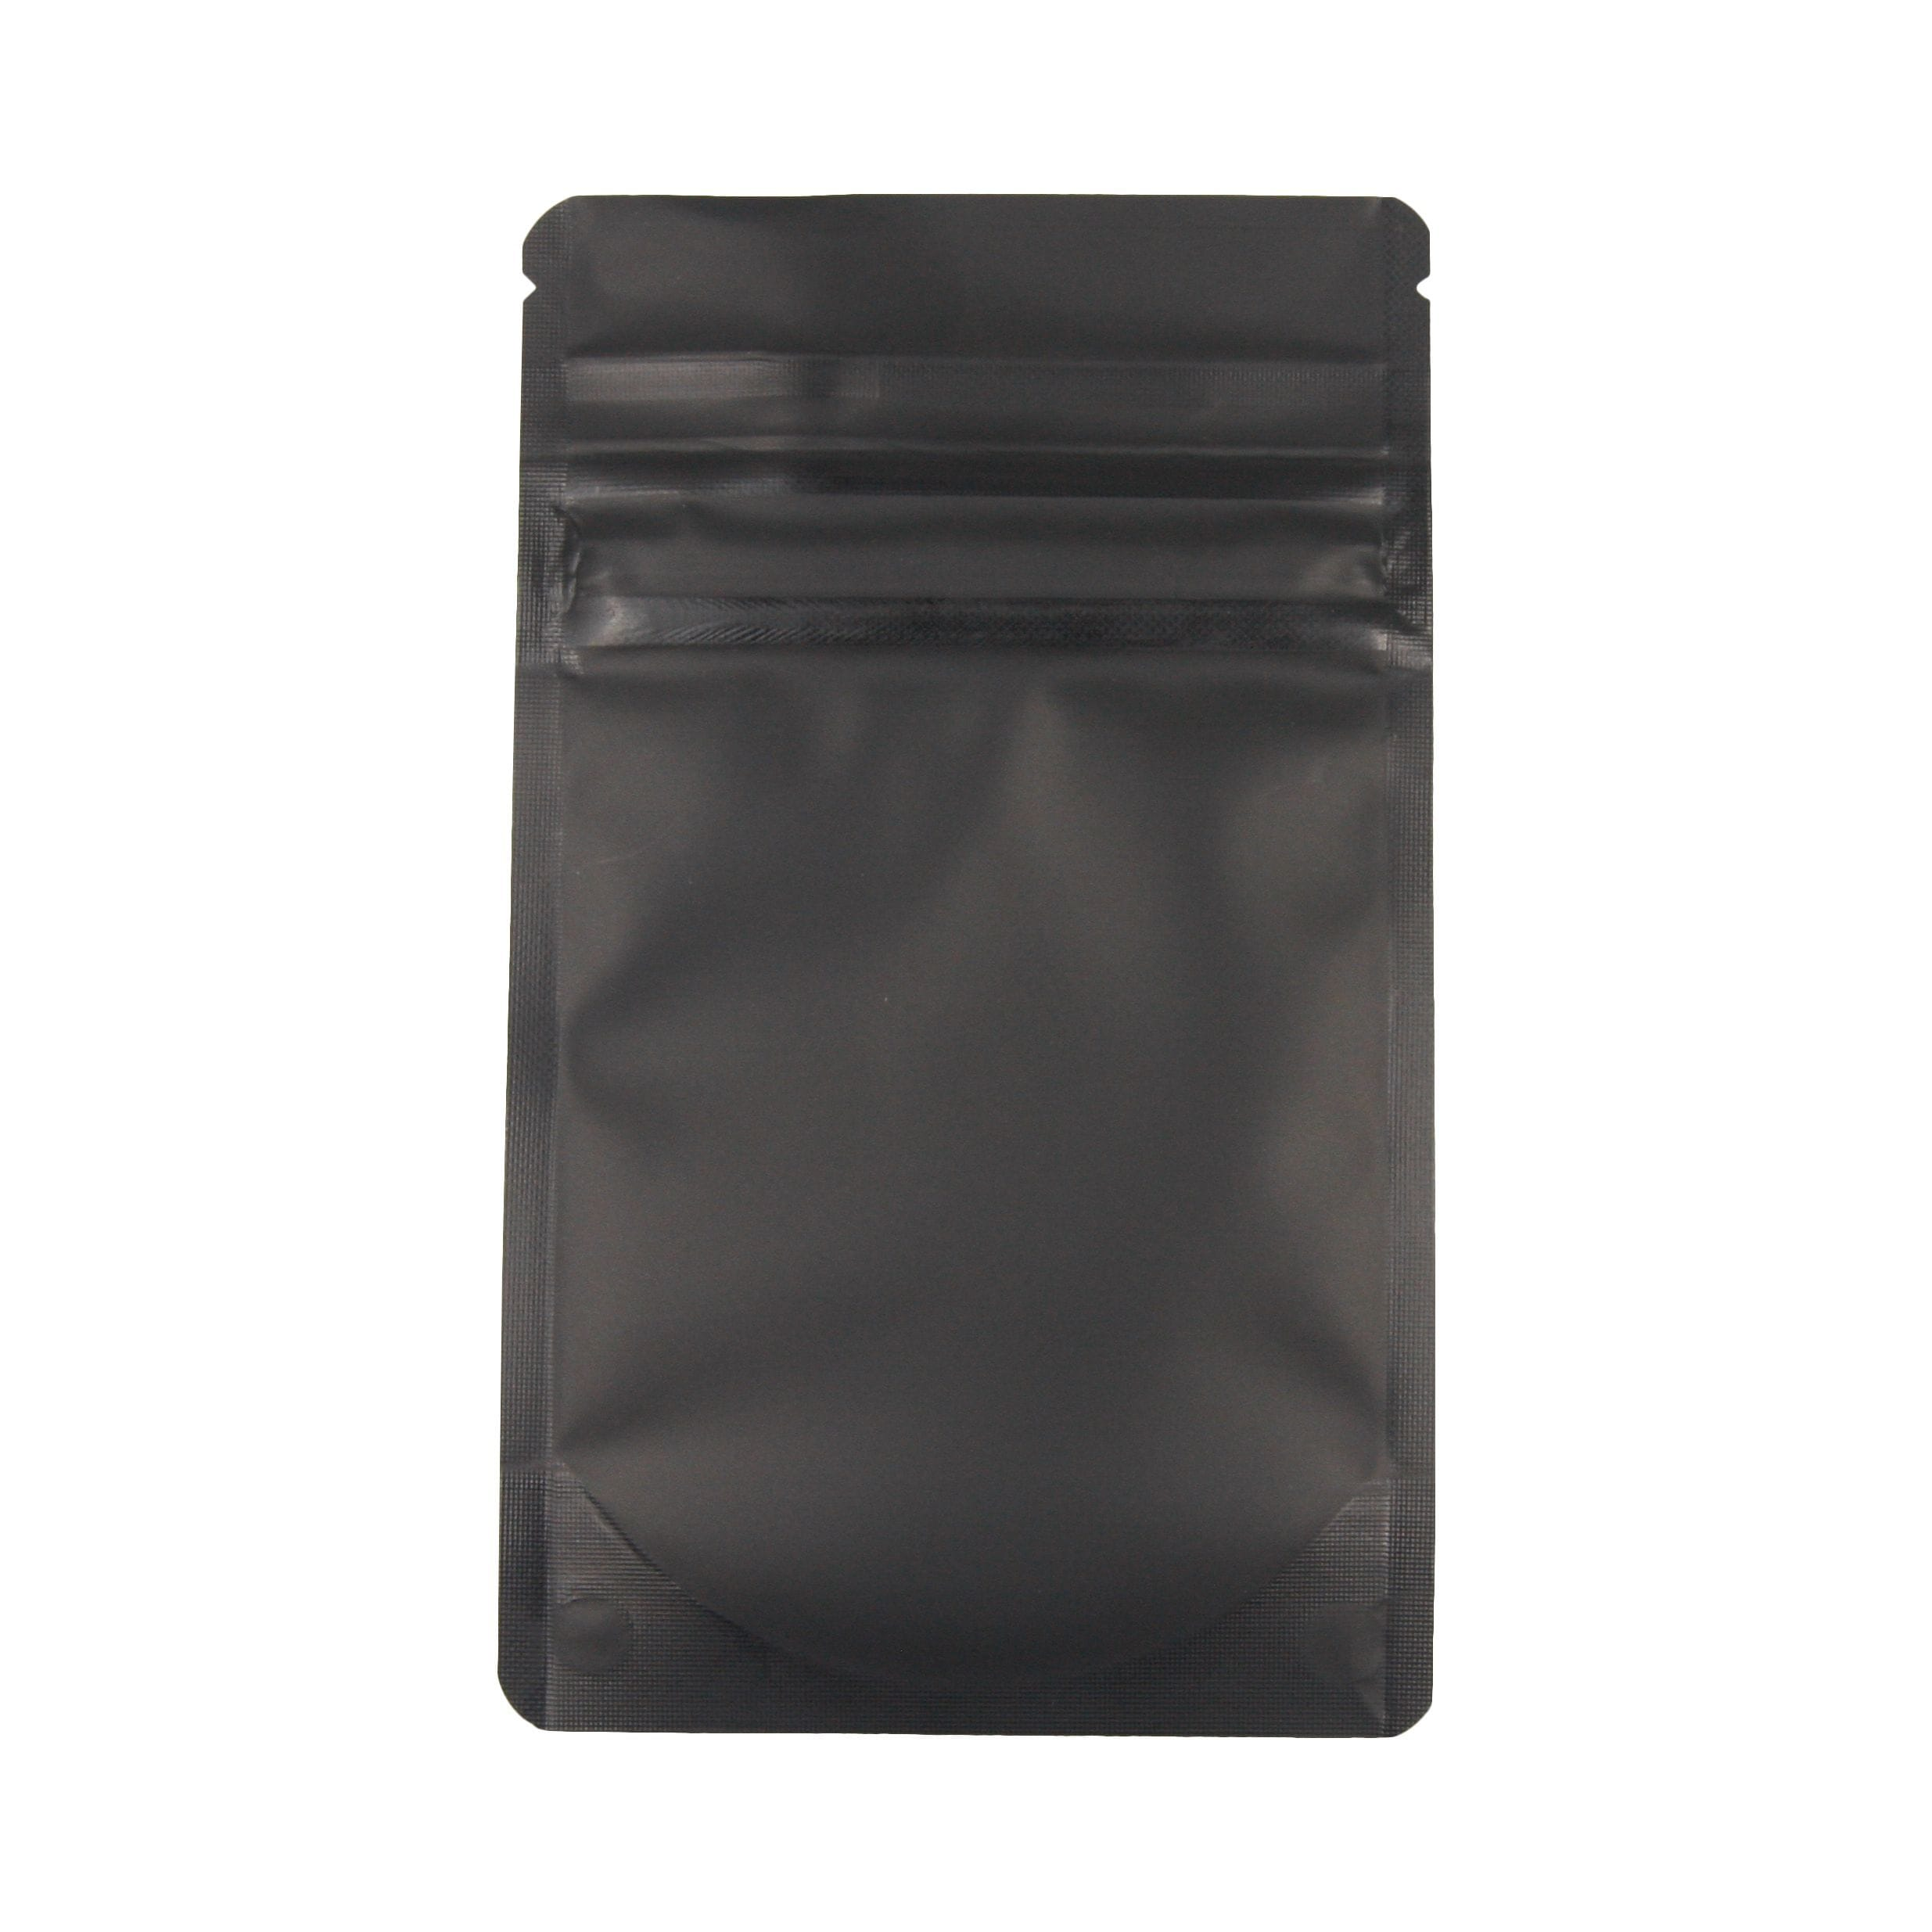 Bag King Child-Resistant Opaque Mylar Bag (1/8th oz) Matte Black